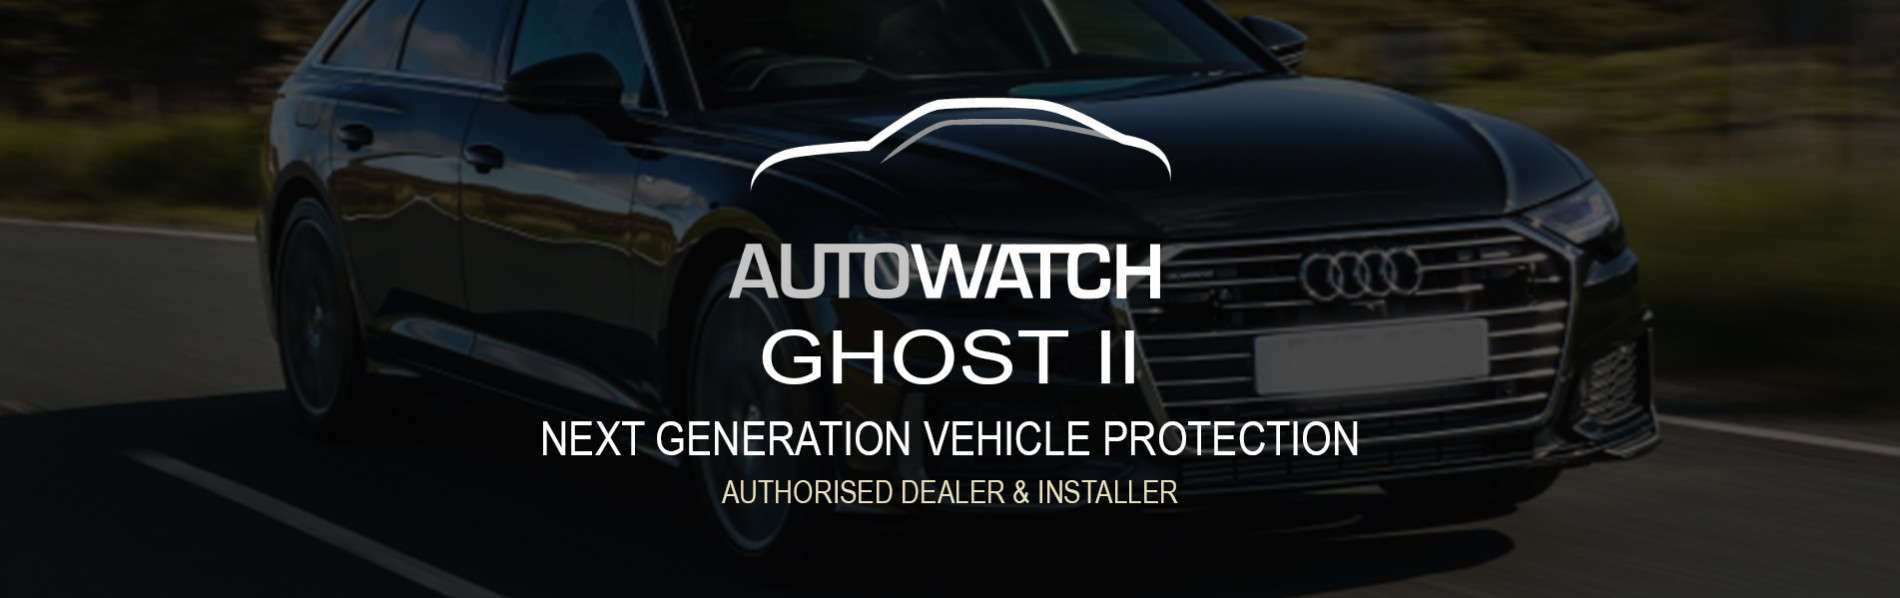 SLIDER BANNER AUTOWATCH GHOST 2